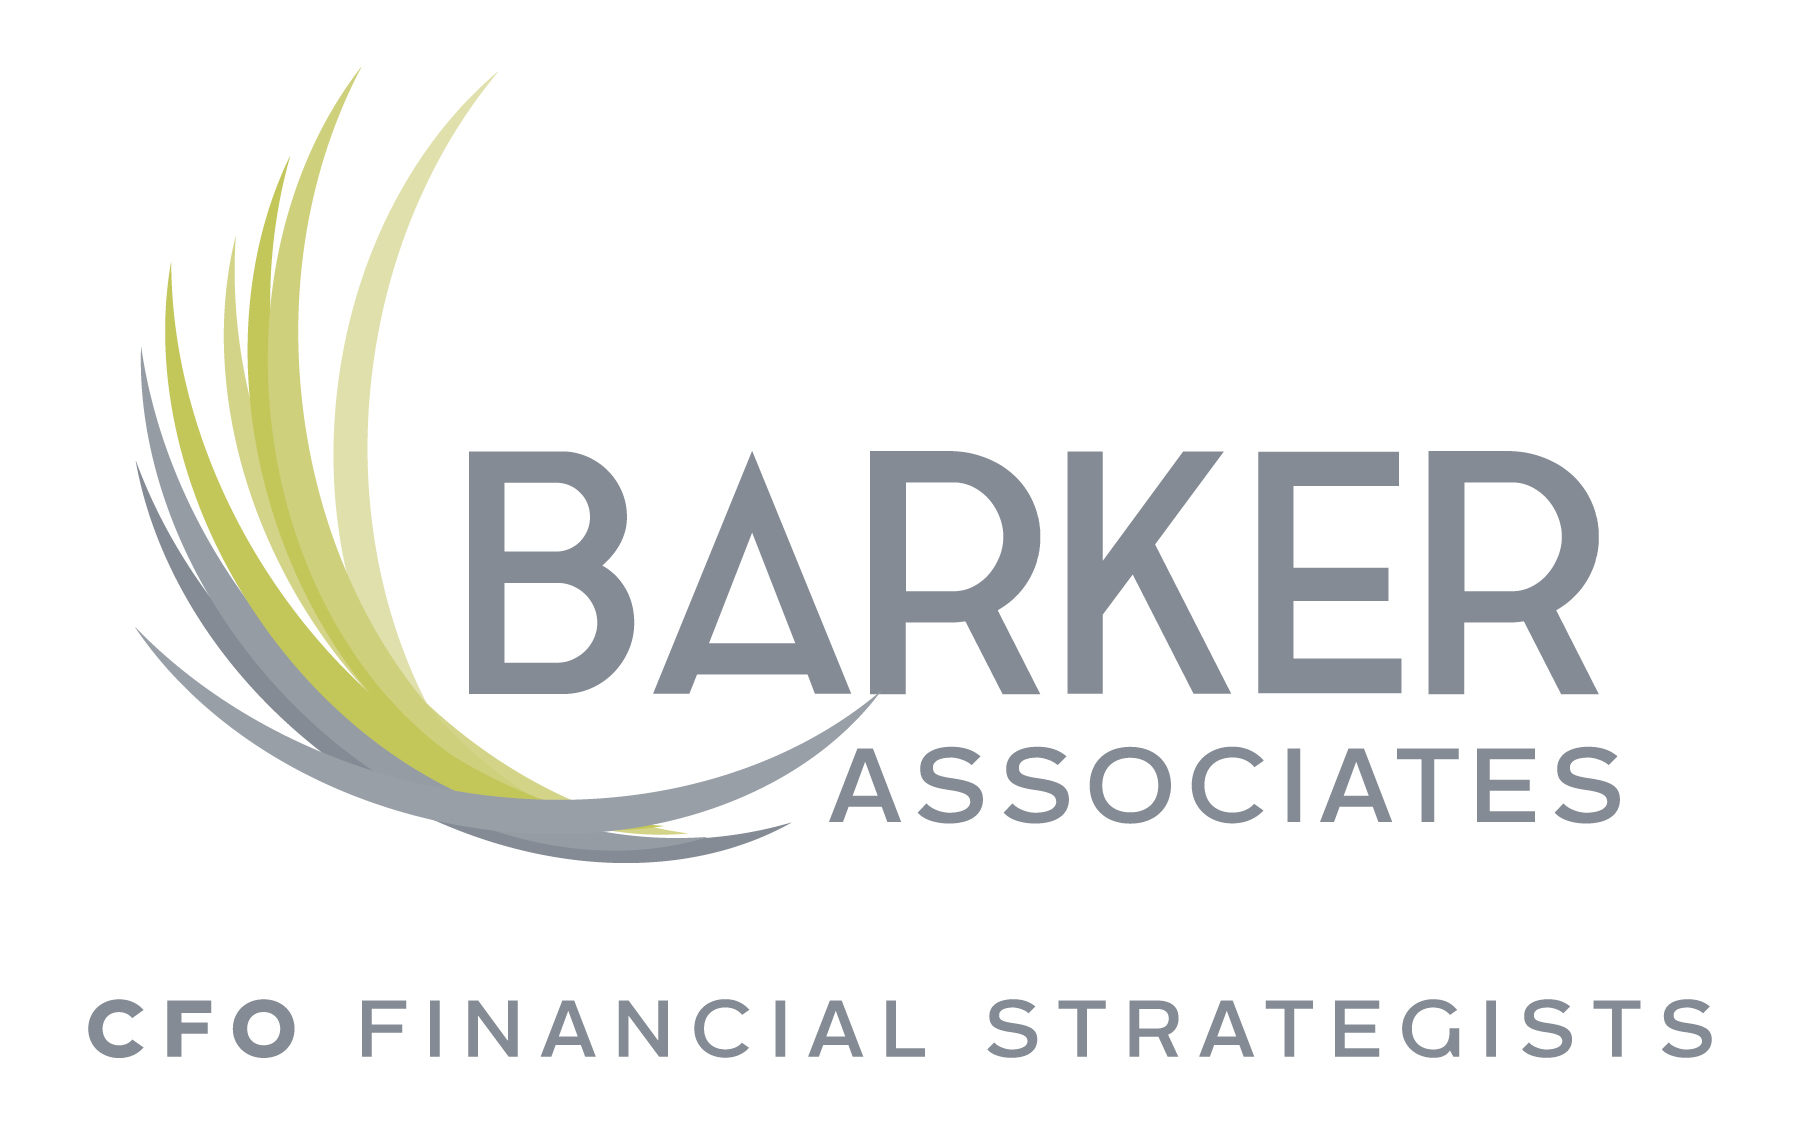 Mindy Barker  and  Associates